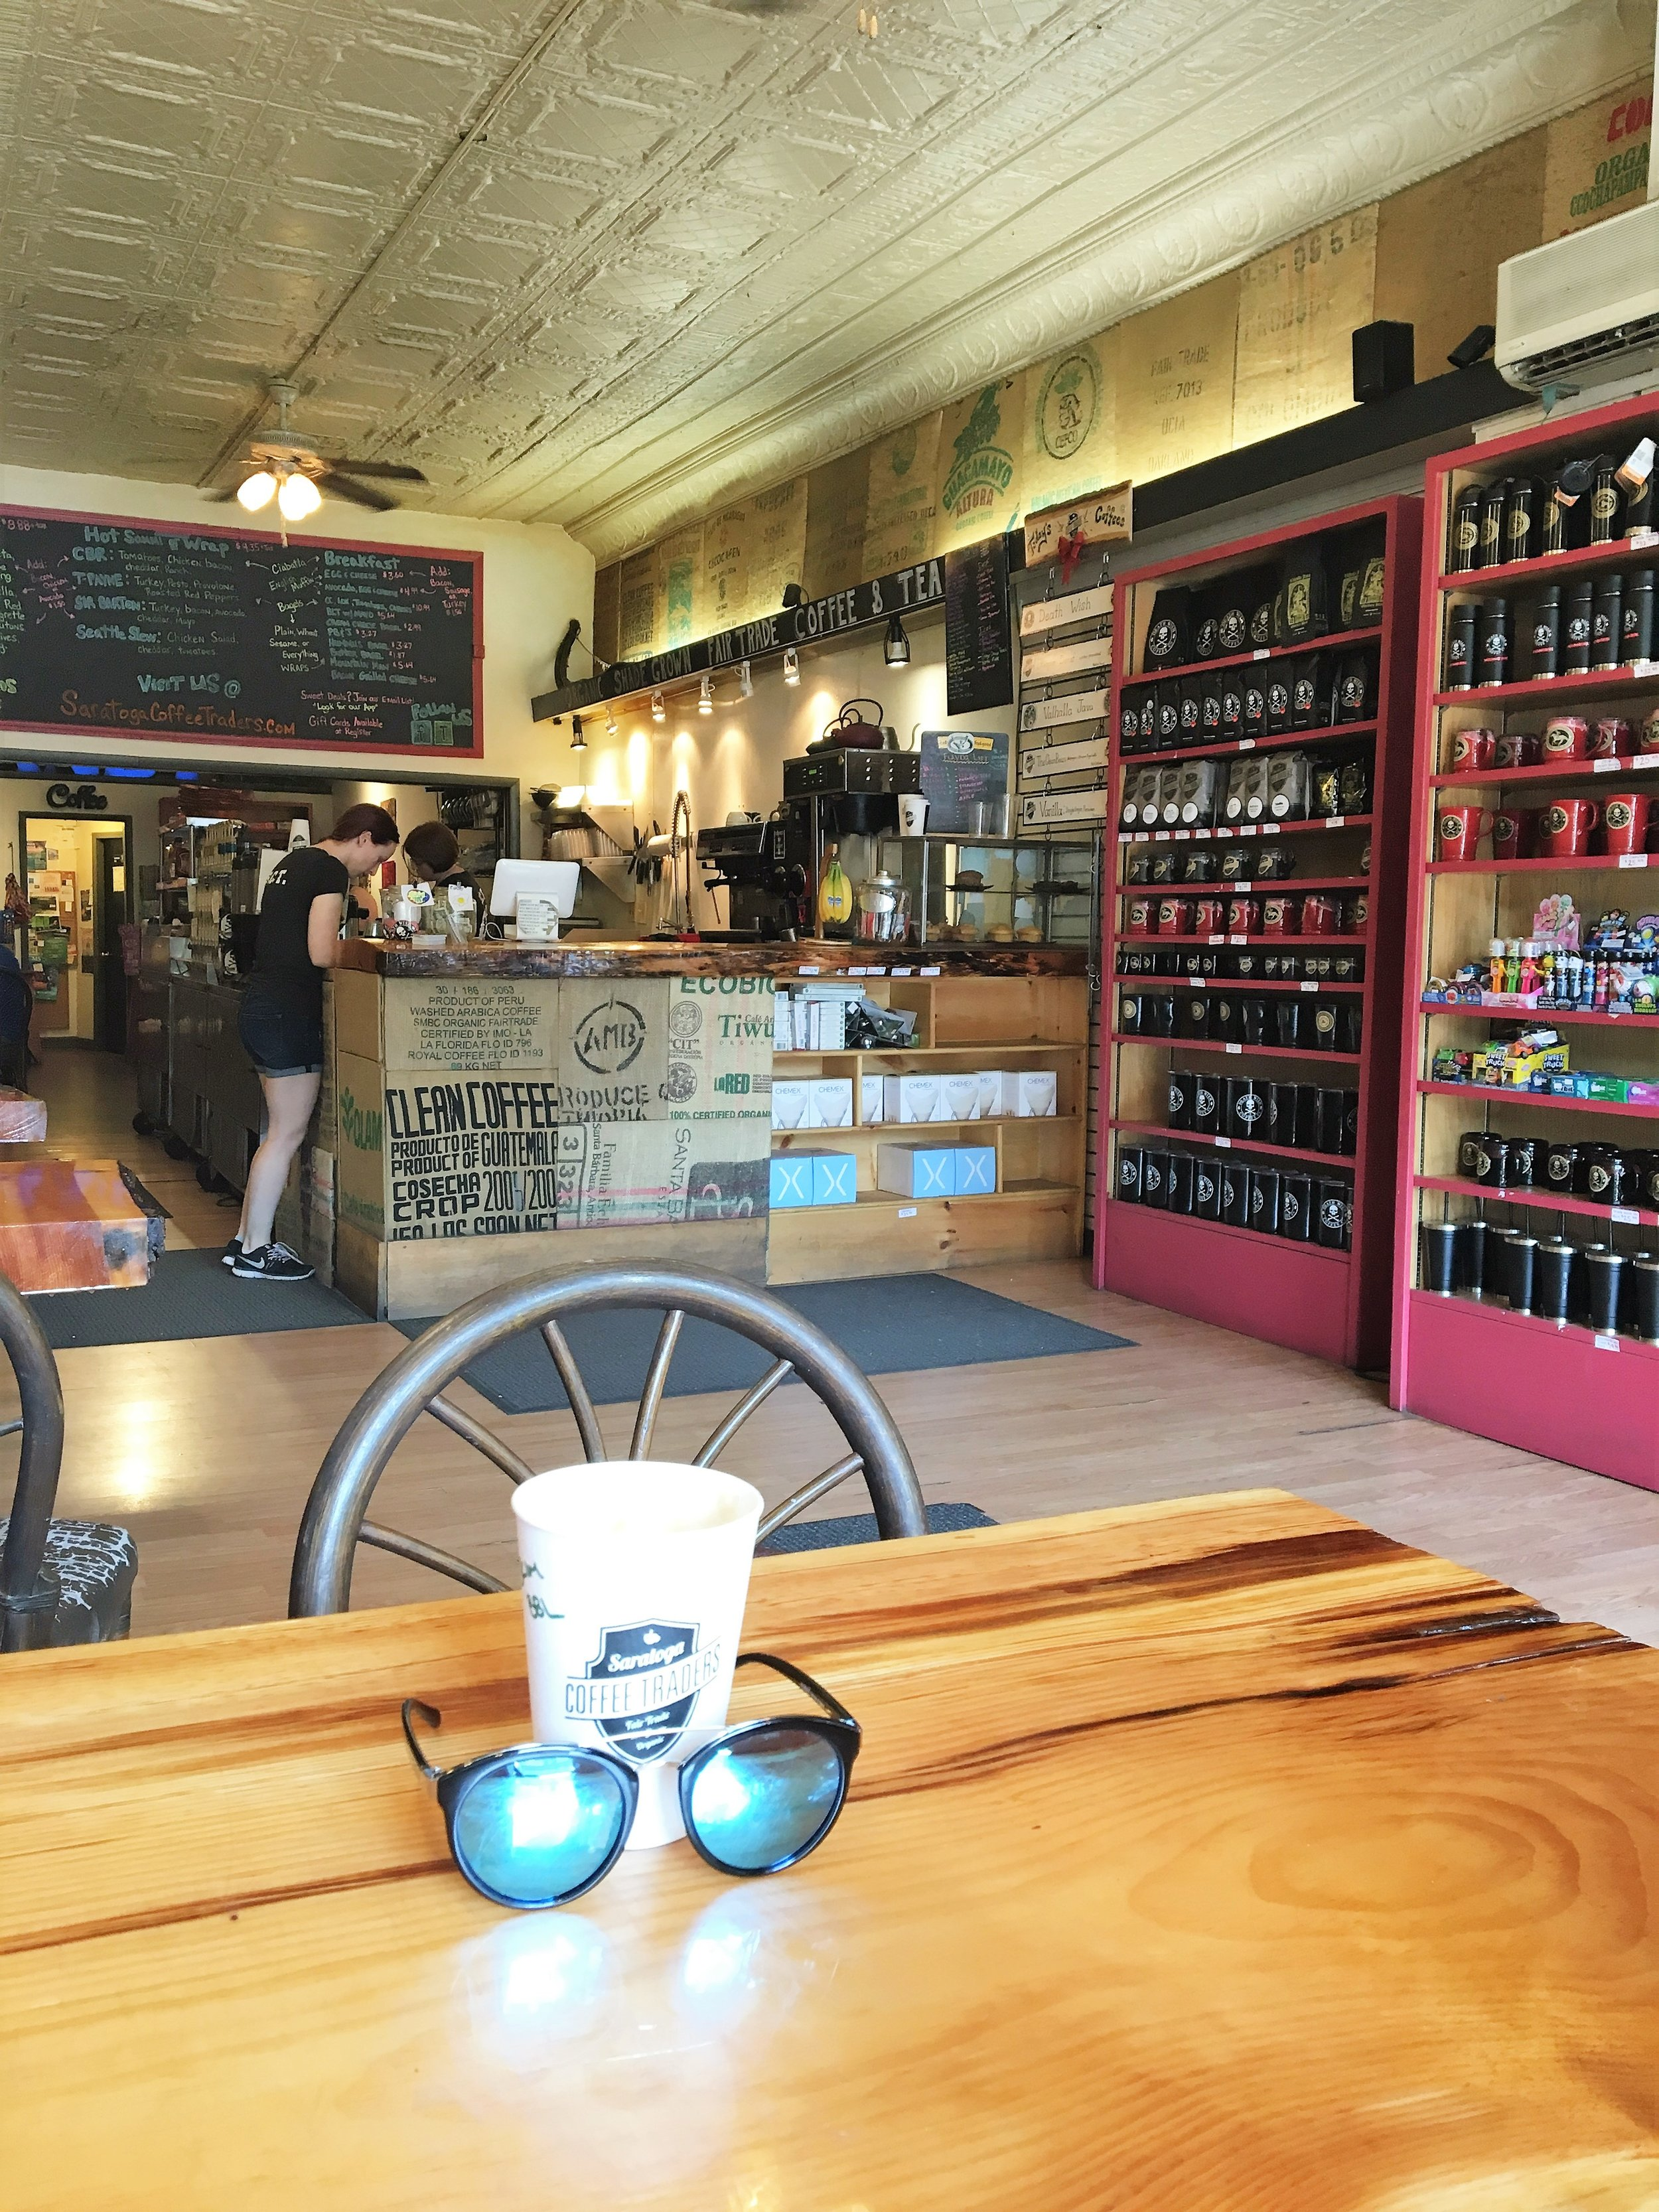 Saturday AM, I headed into town with two of my buds in search of coffee. We found  Saratoga Coffee Traders  and it was such a treat. They had some amazing specialty lattes. We loved it so much we went back the next morning for more!